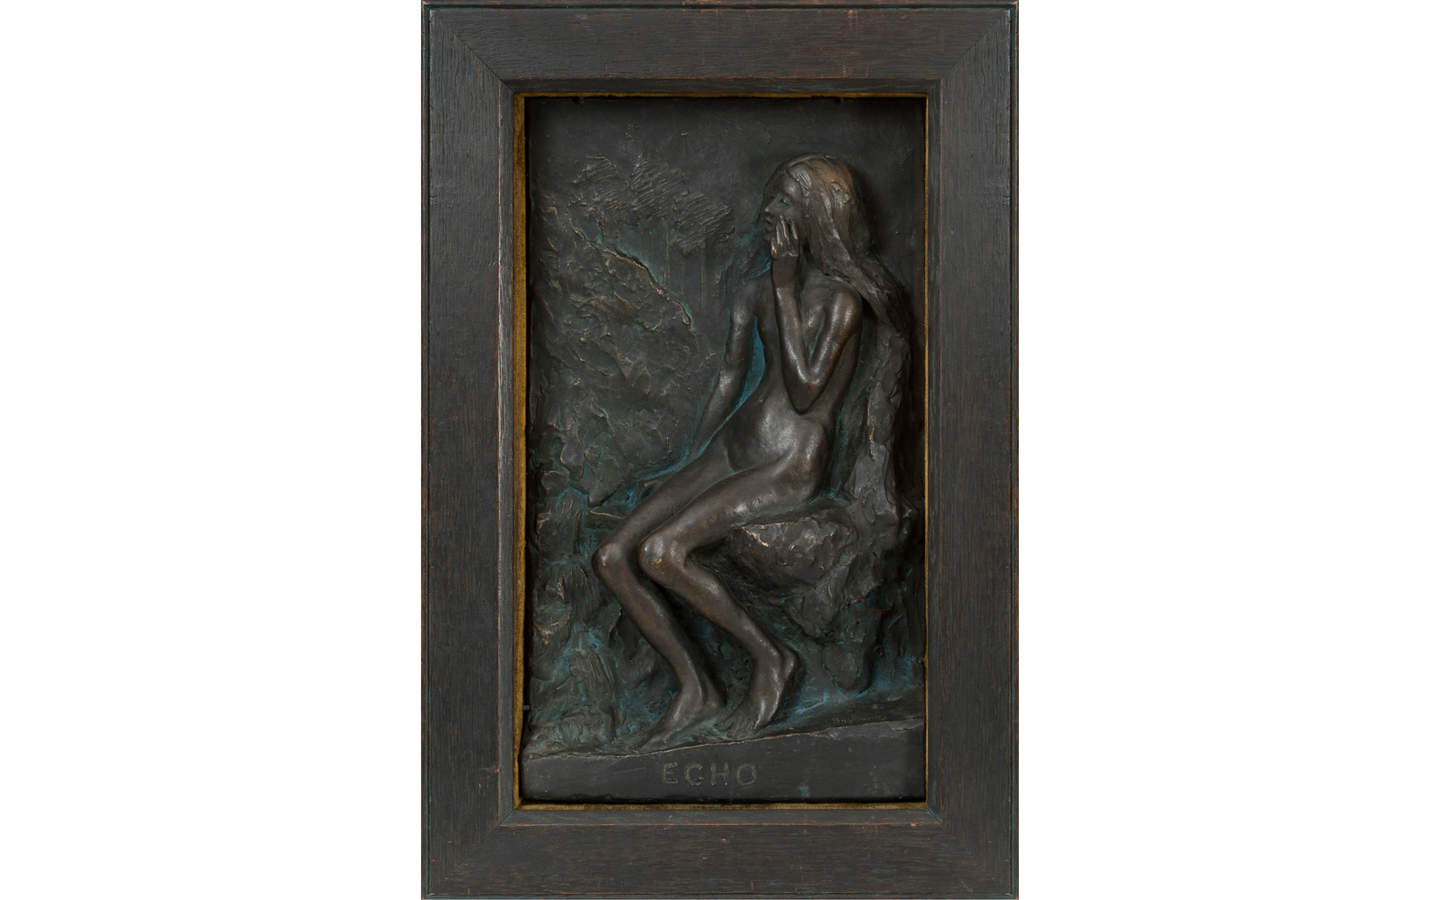 A relief sculpture in dark bronze of a nude female figure is seated in a rock formation, under which the word ECHO is spelt.